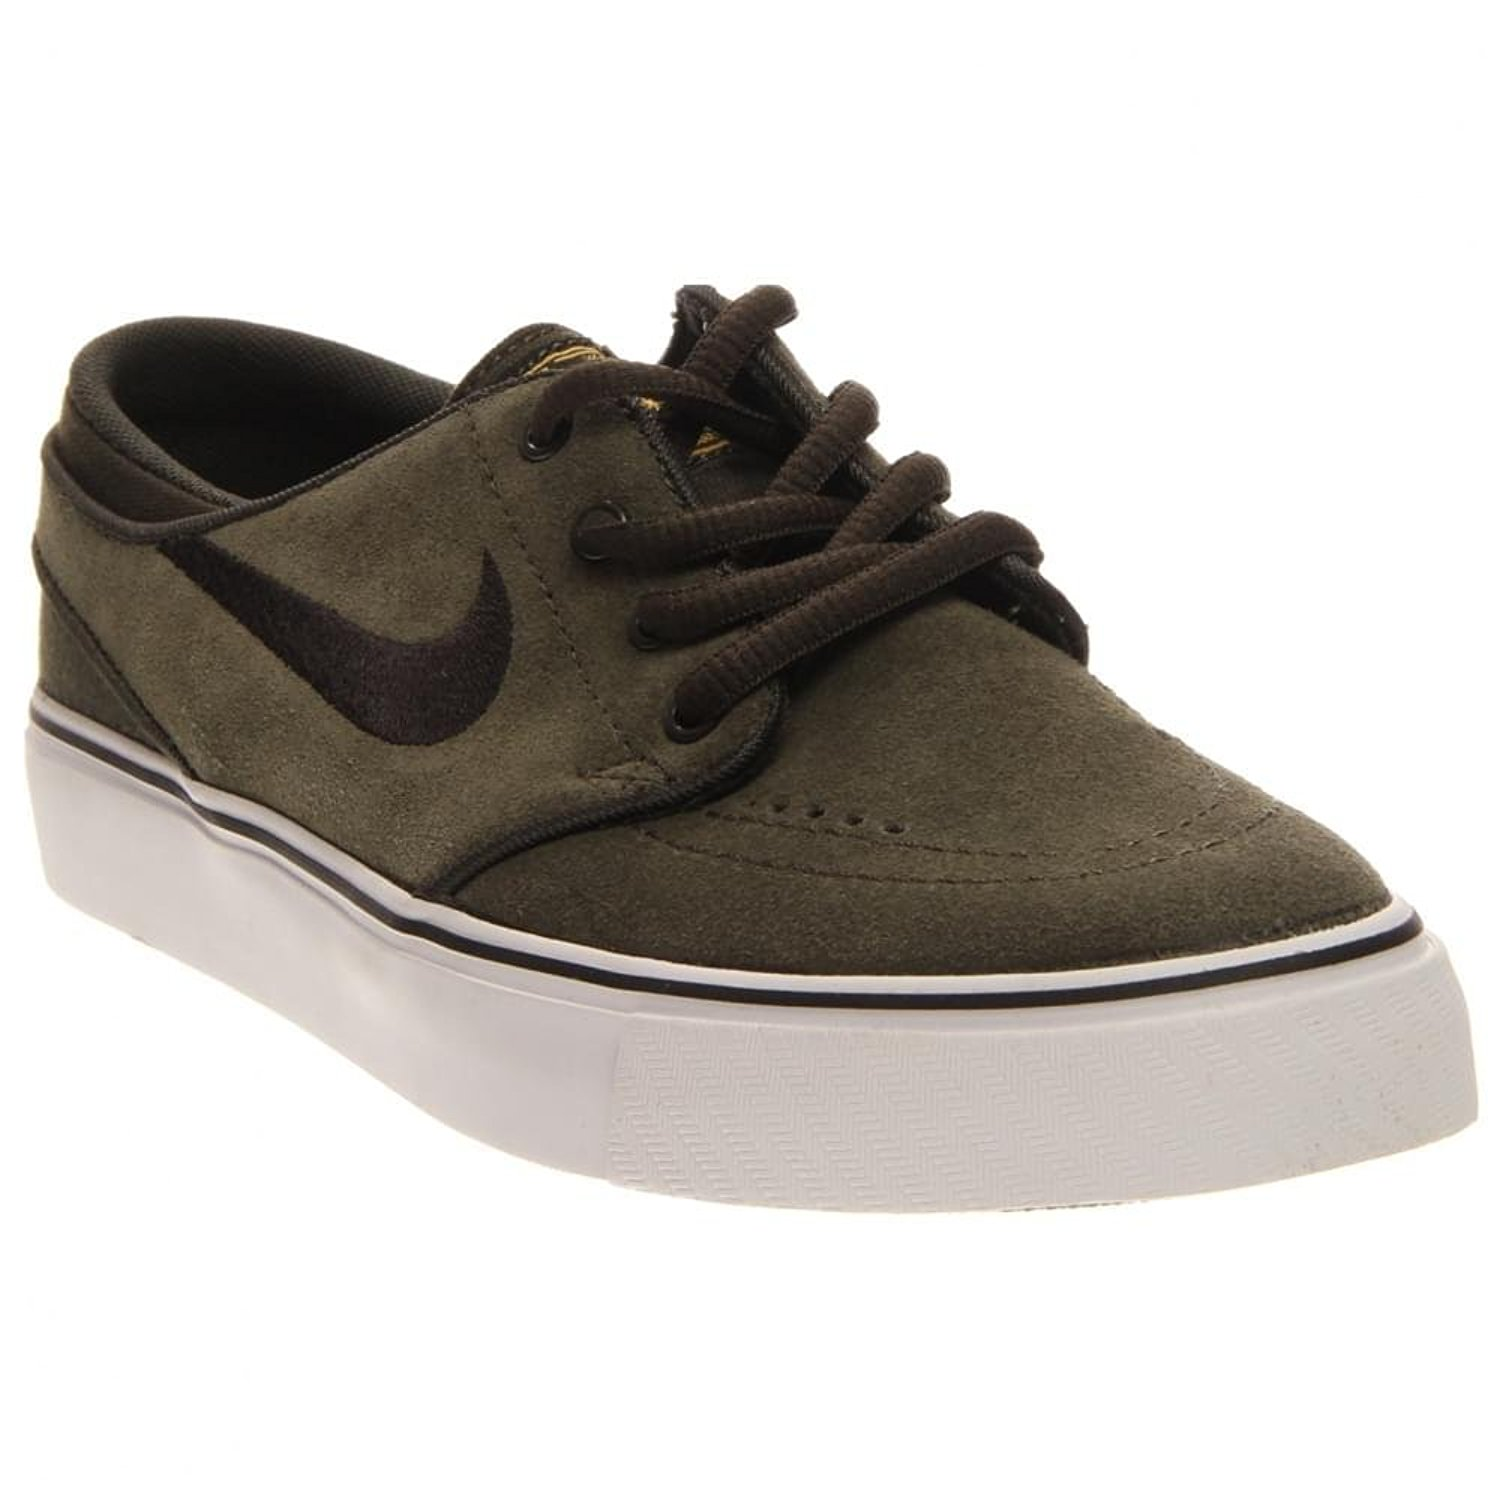 quality design 6dba0 46d07 Get Quotations · Nike Stefan Janoski SequoiaBlackUniversity Gold Youth